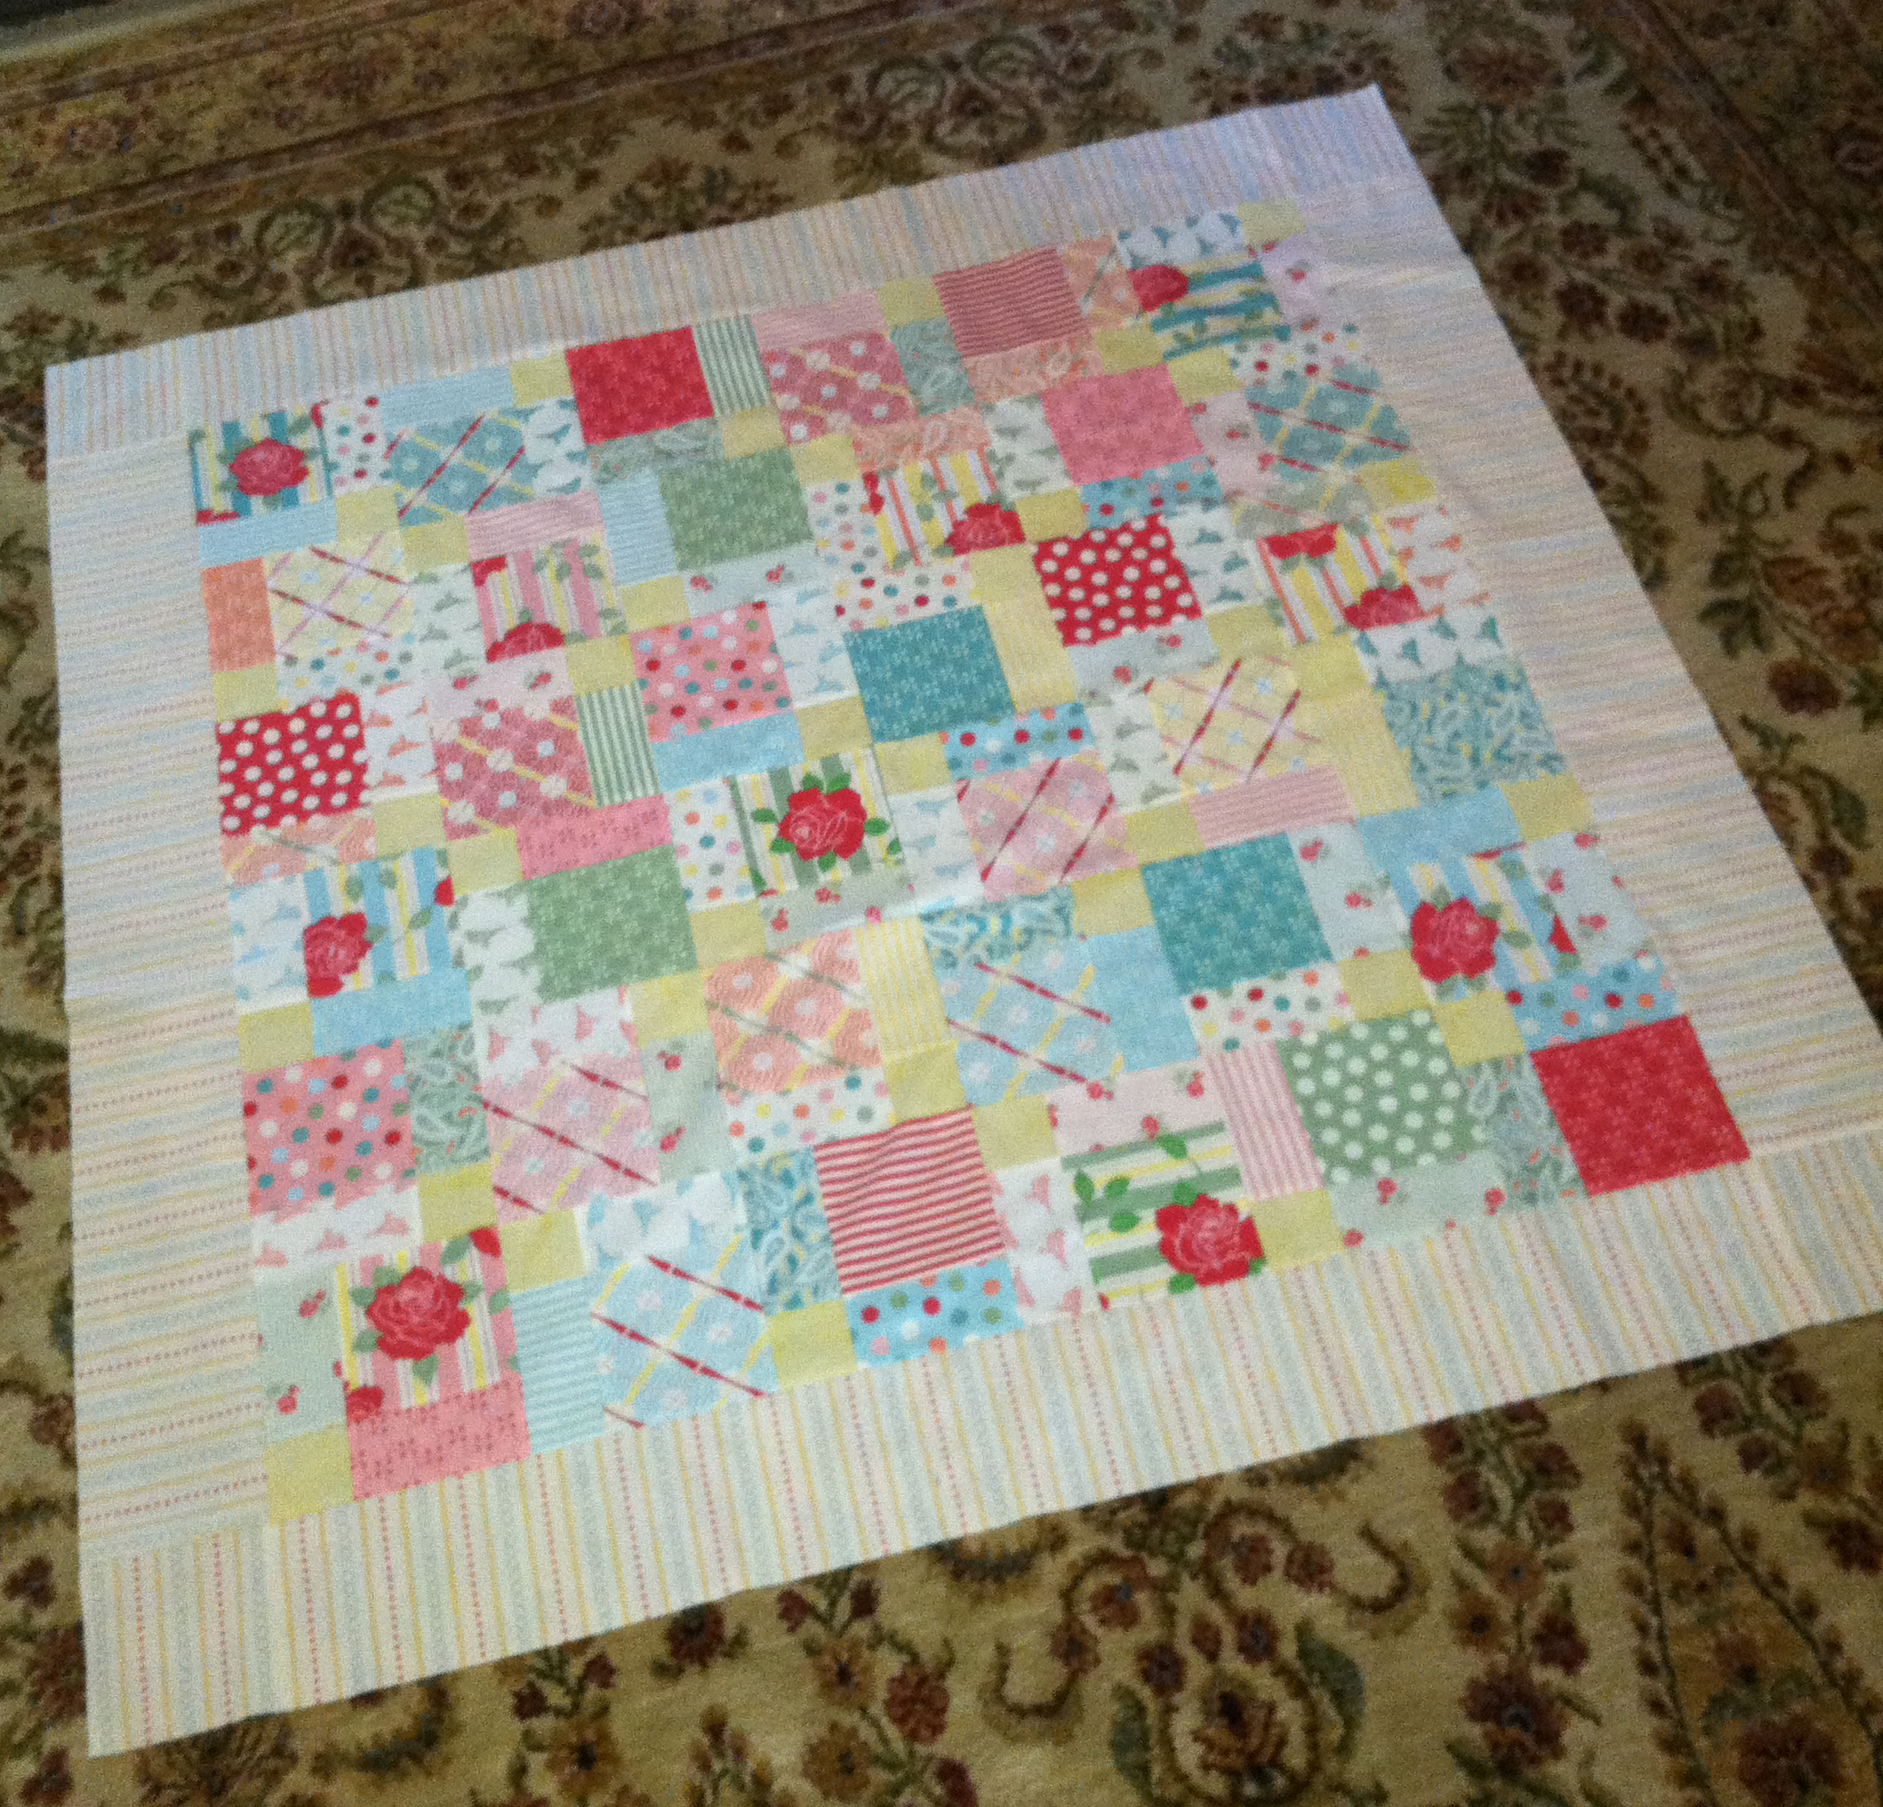 Disappearing Nine Patch Quilt Pattern - The Spruce